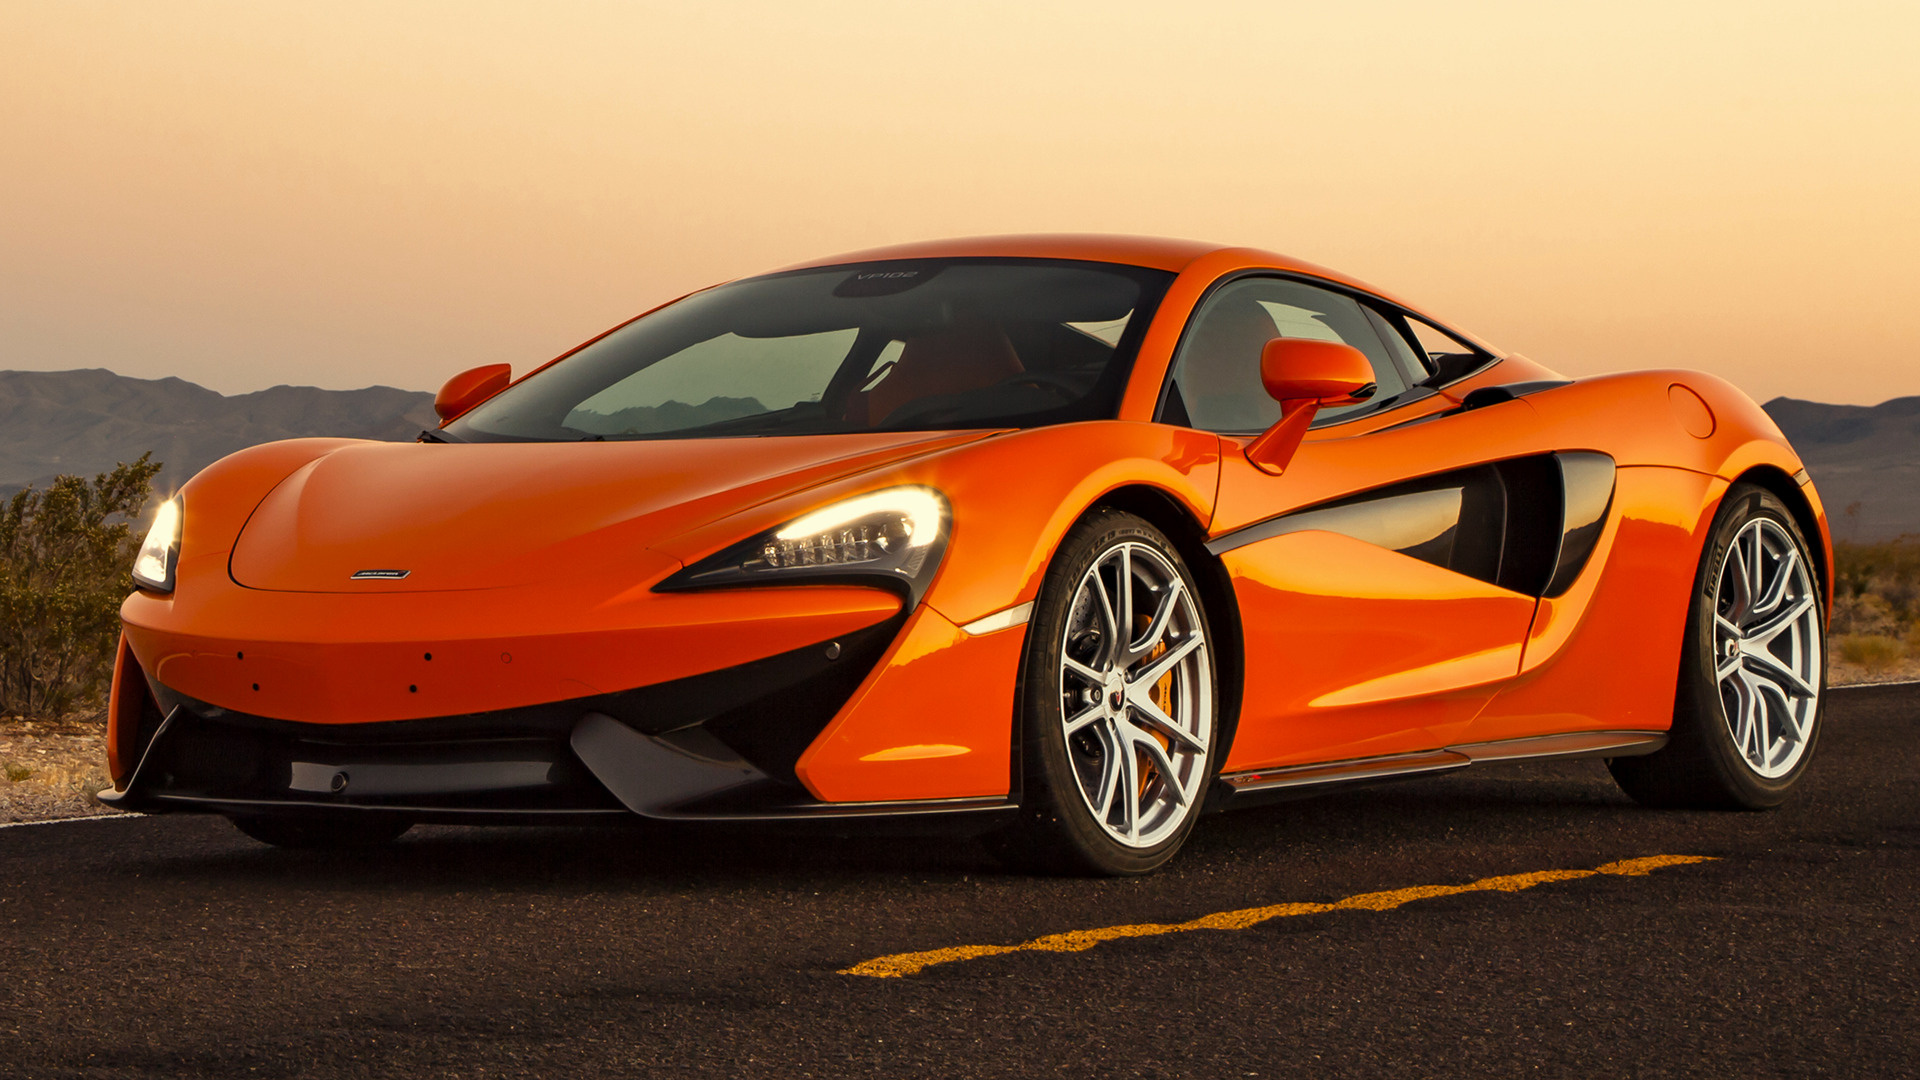 5609489 1920x1080 mclaren 570s wallpaper for desktop